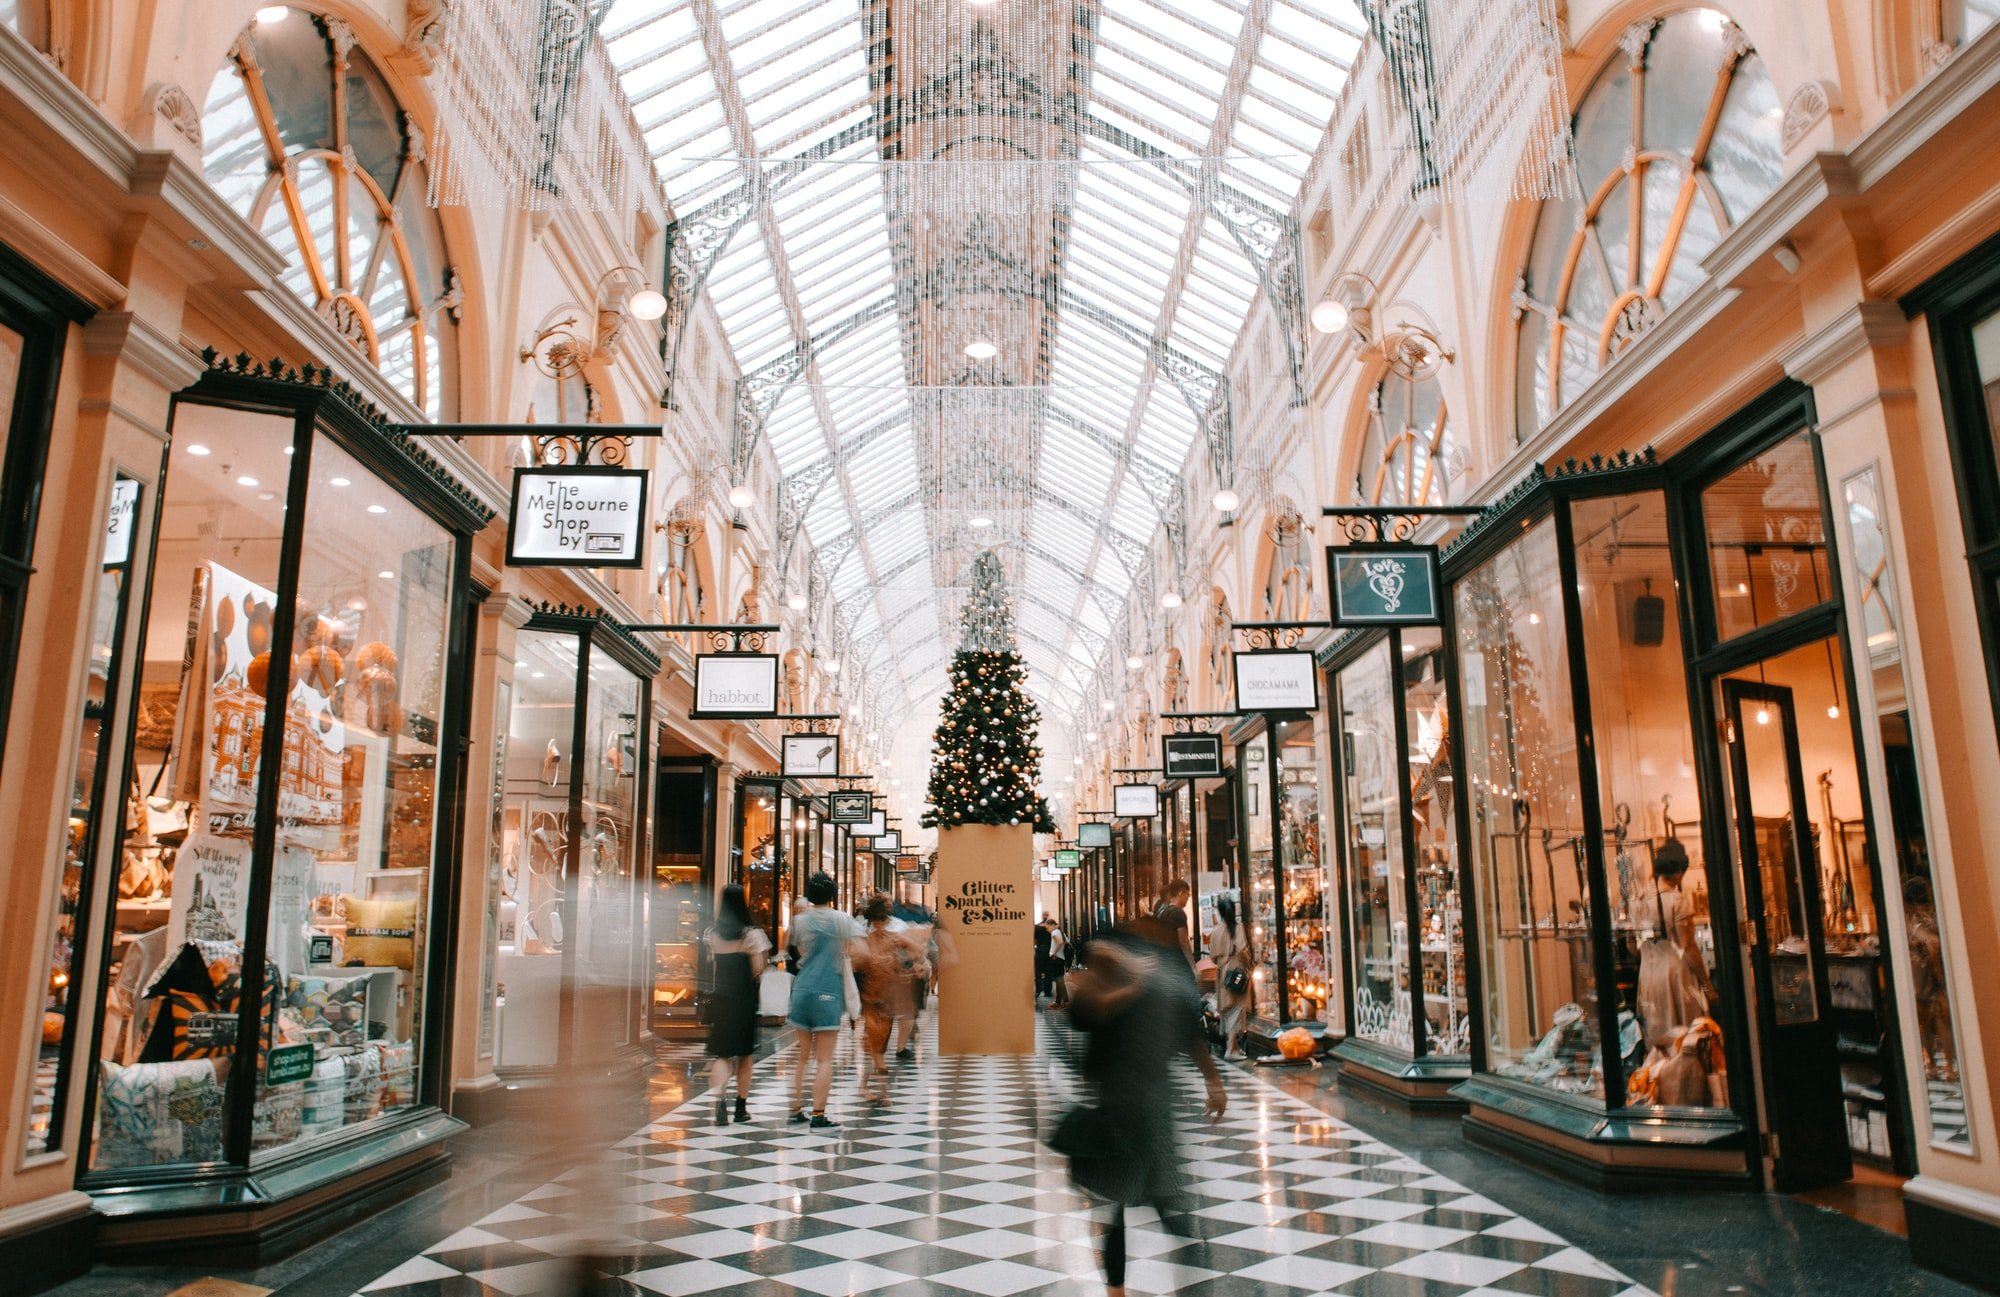 As people emerge from COVID hibernation, how are stores changing their approach?